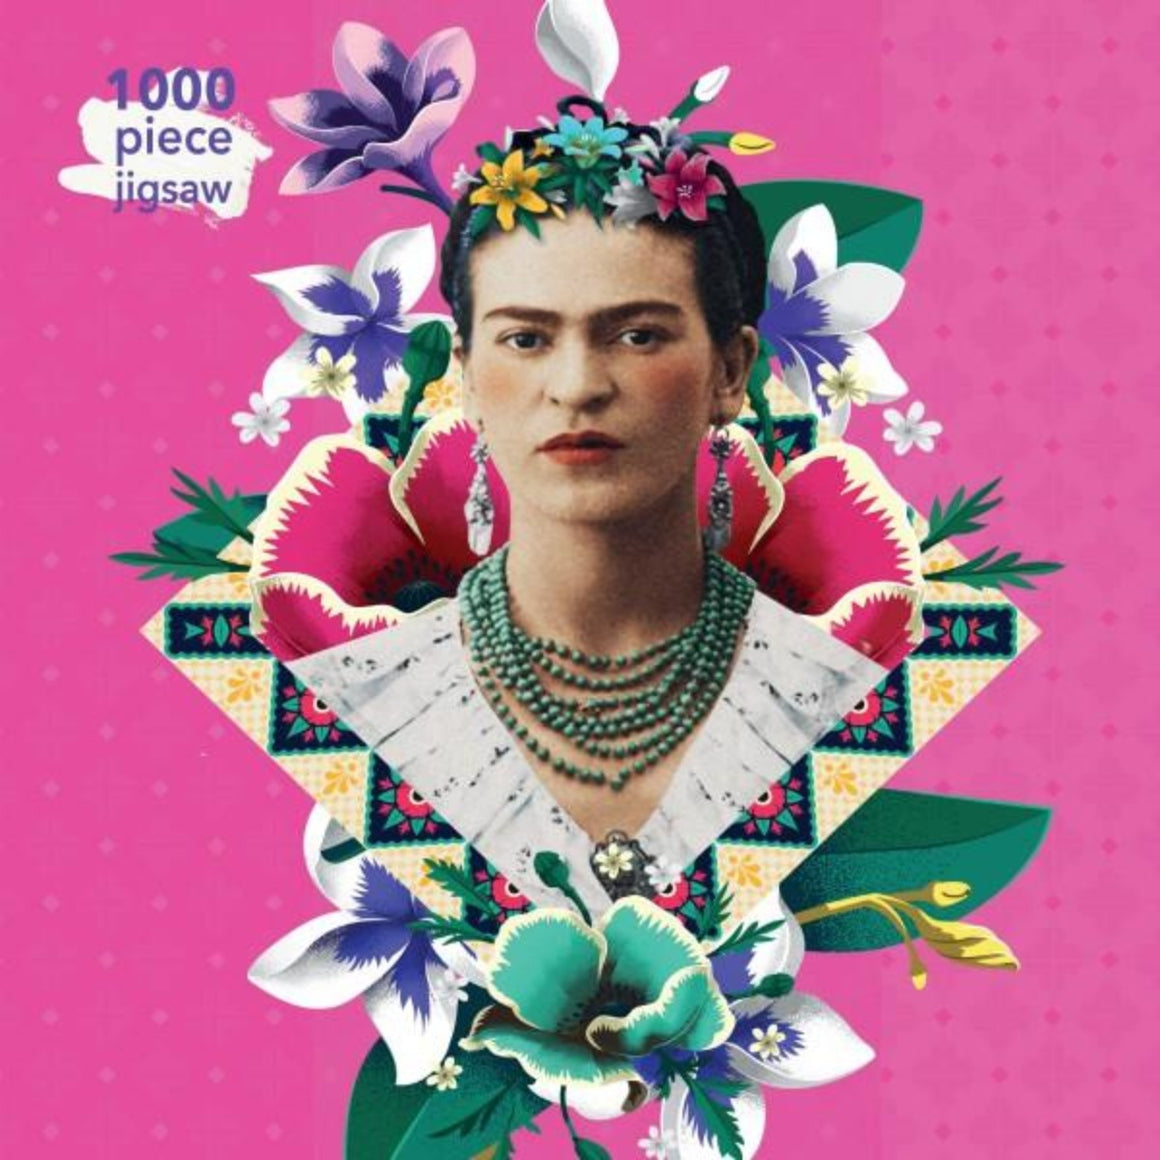 1000 Piece Jigsaw Puzzle with a pink background featuring a range of graphically illustrated flowers with a image of the mexican painter Frida Kahlo featured in the centre